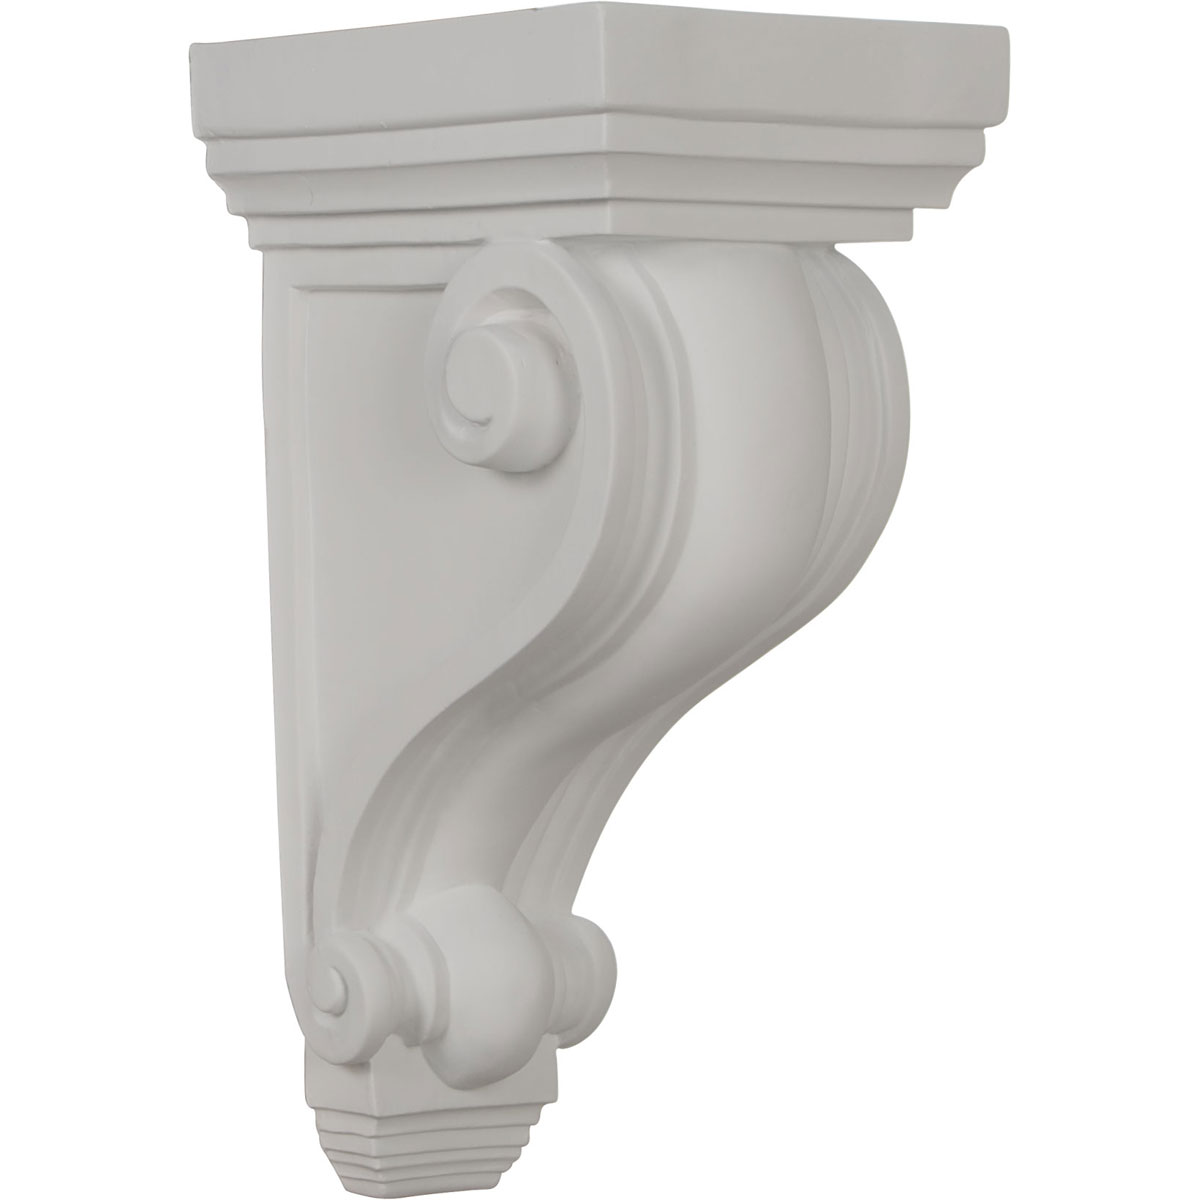 exterior corbels polyurethane. specifications exterior corbels polyurethane